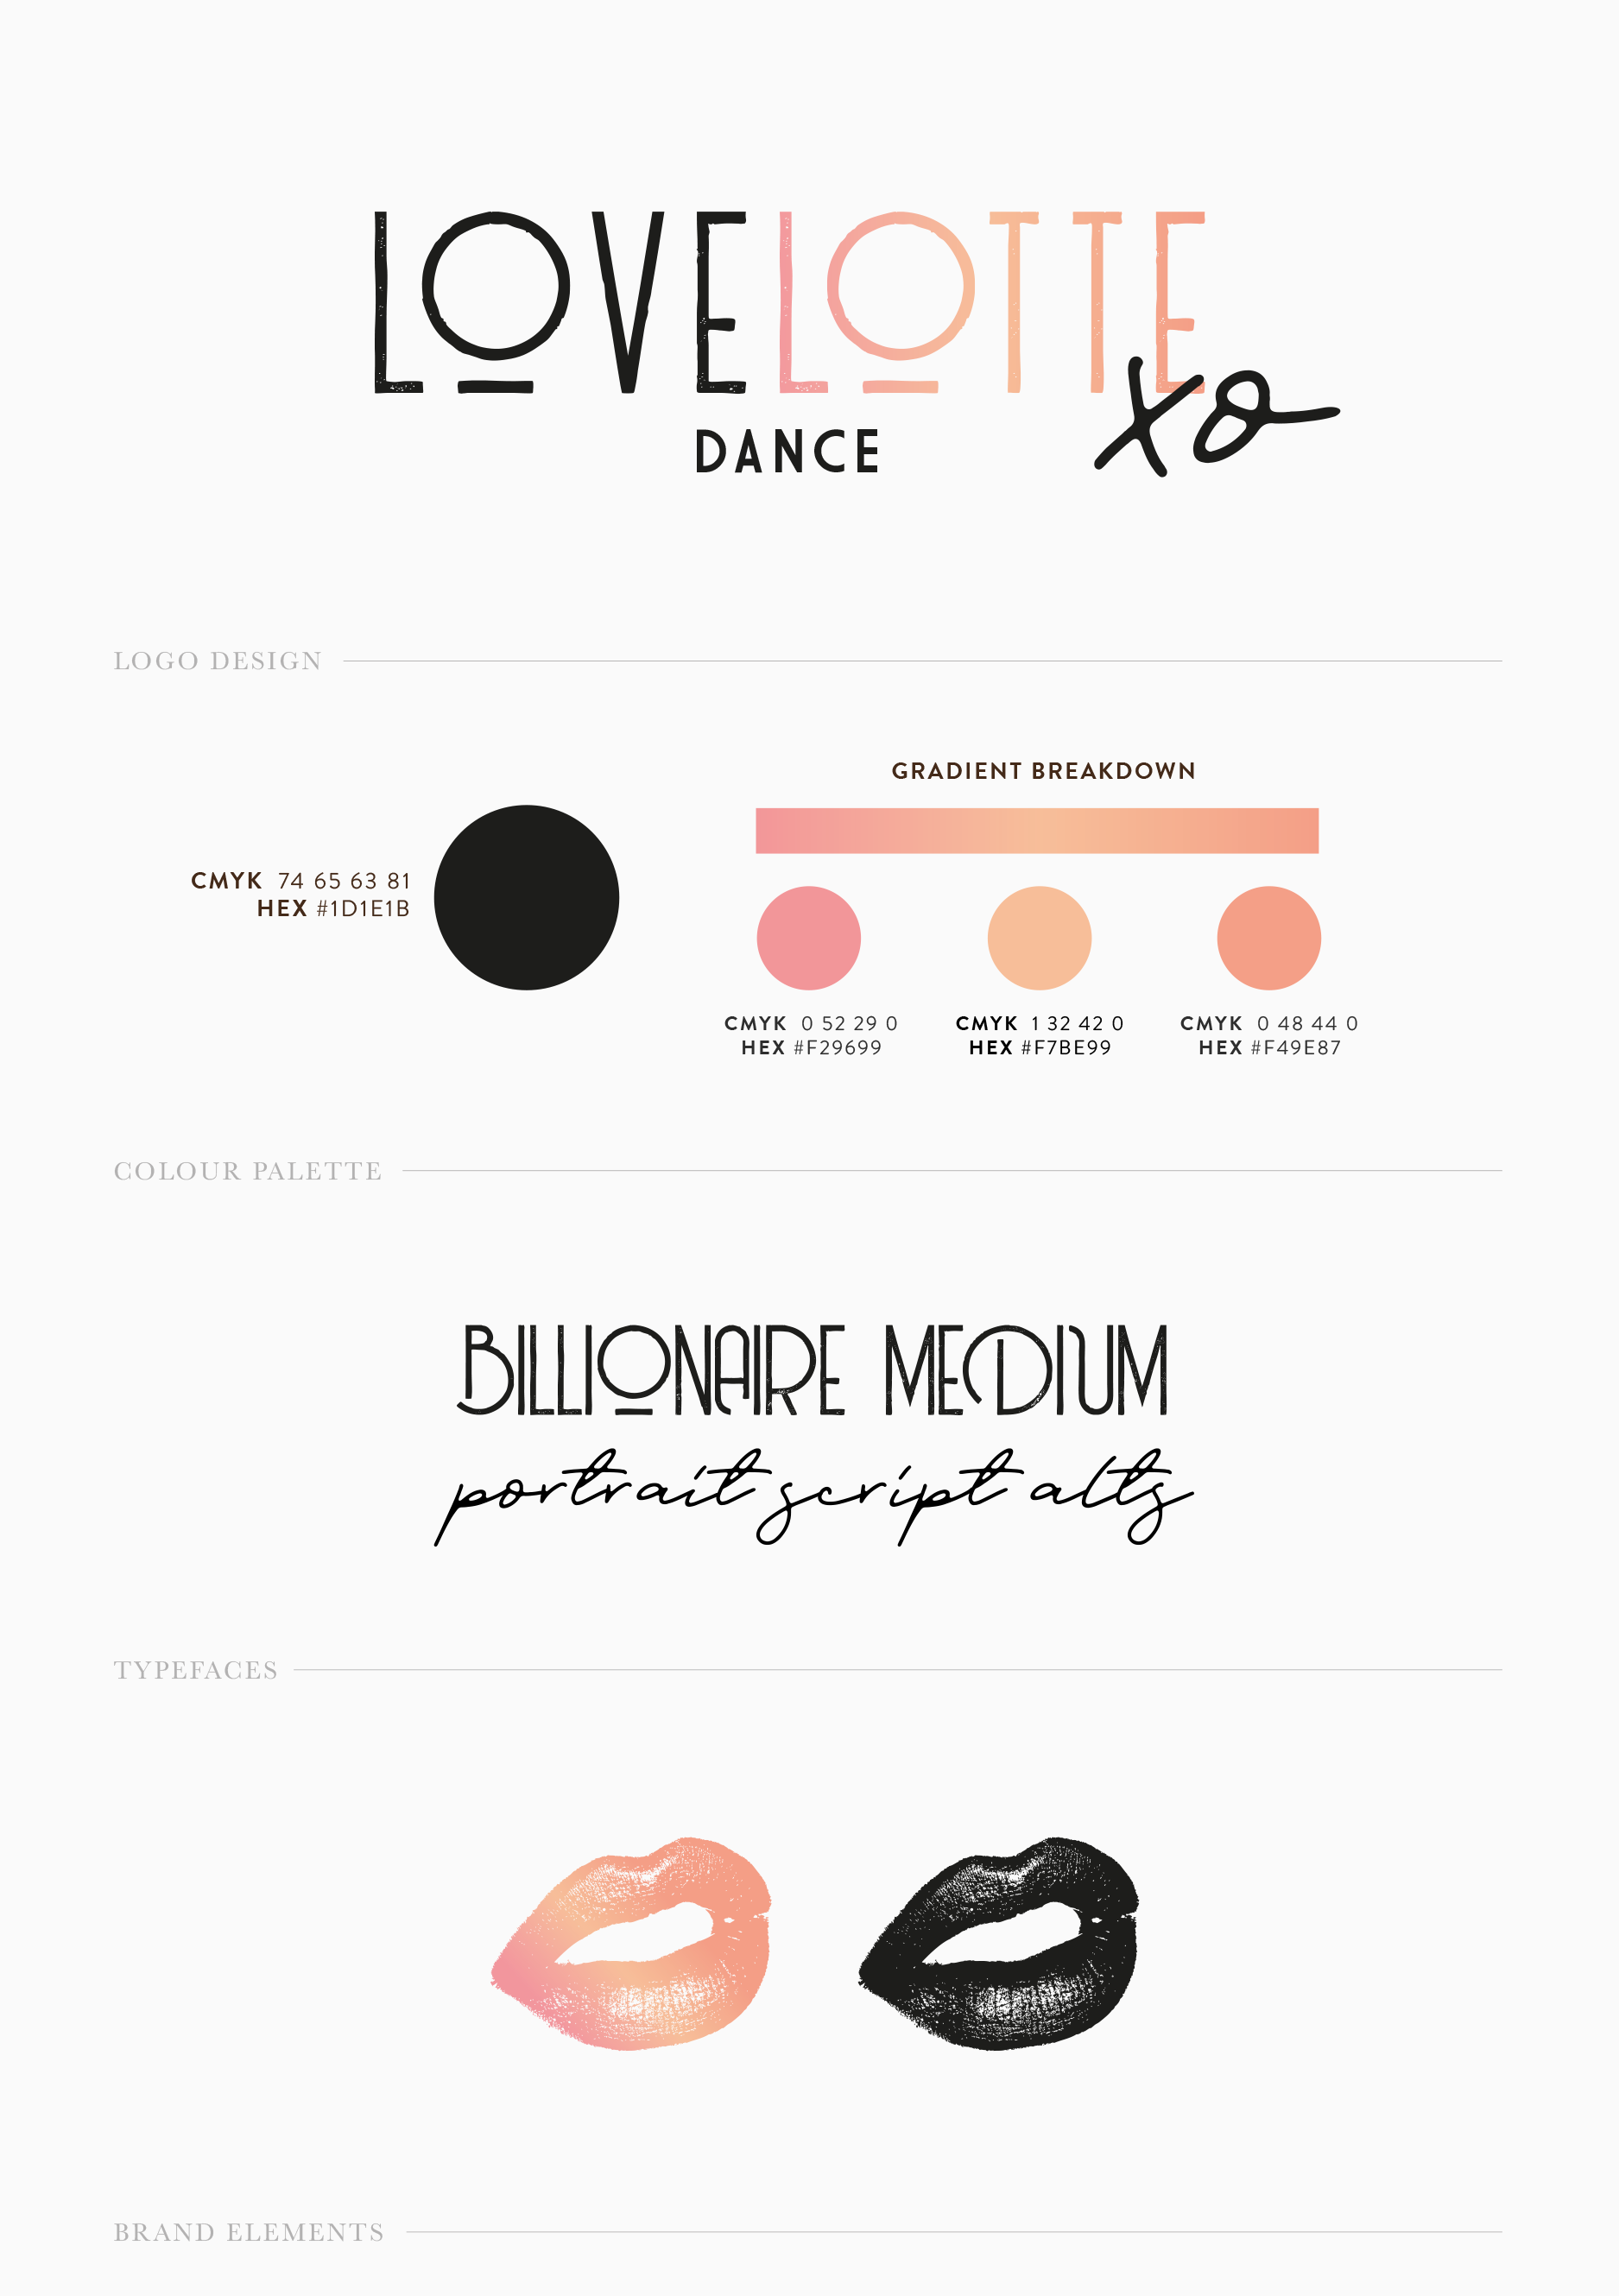 The brand document outlining the new logo, colour palette and brand elements for dance studio and attire brand Love Lotte - designed by Wiltshire-based graphic designer, Kaye Huett